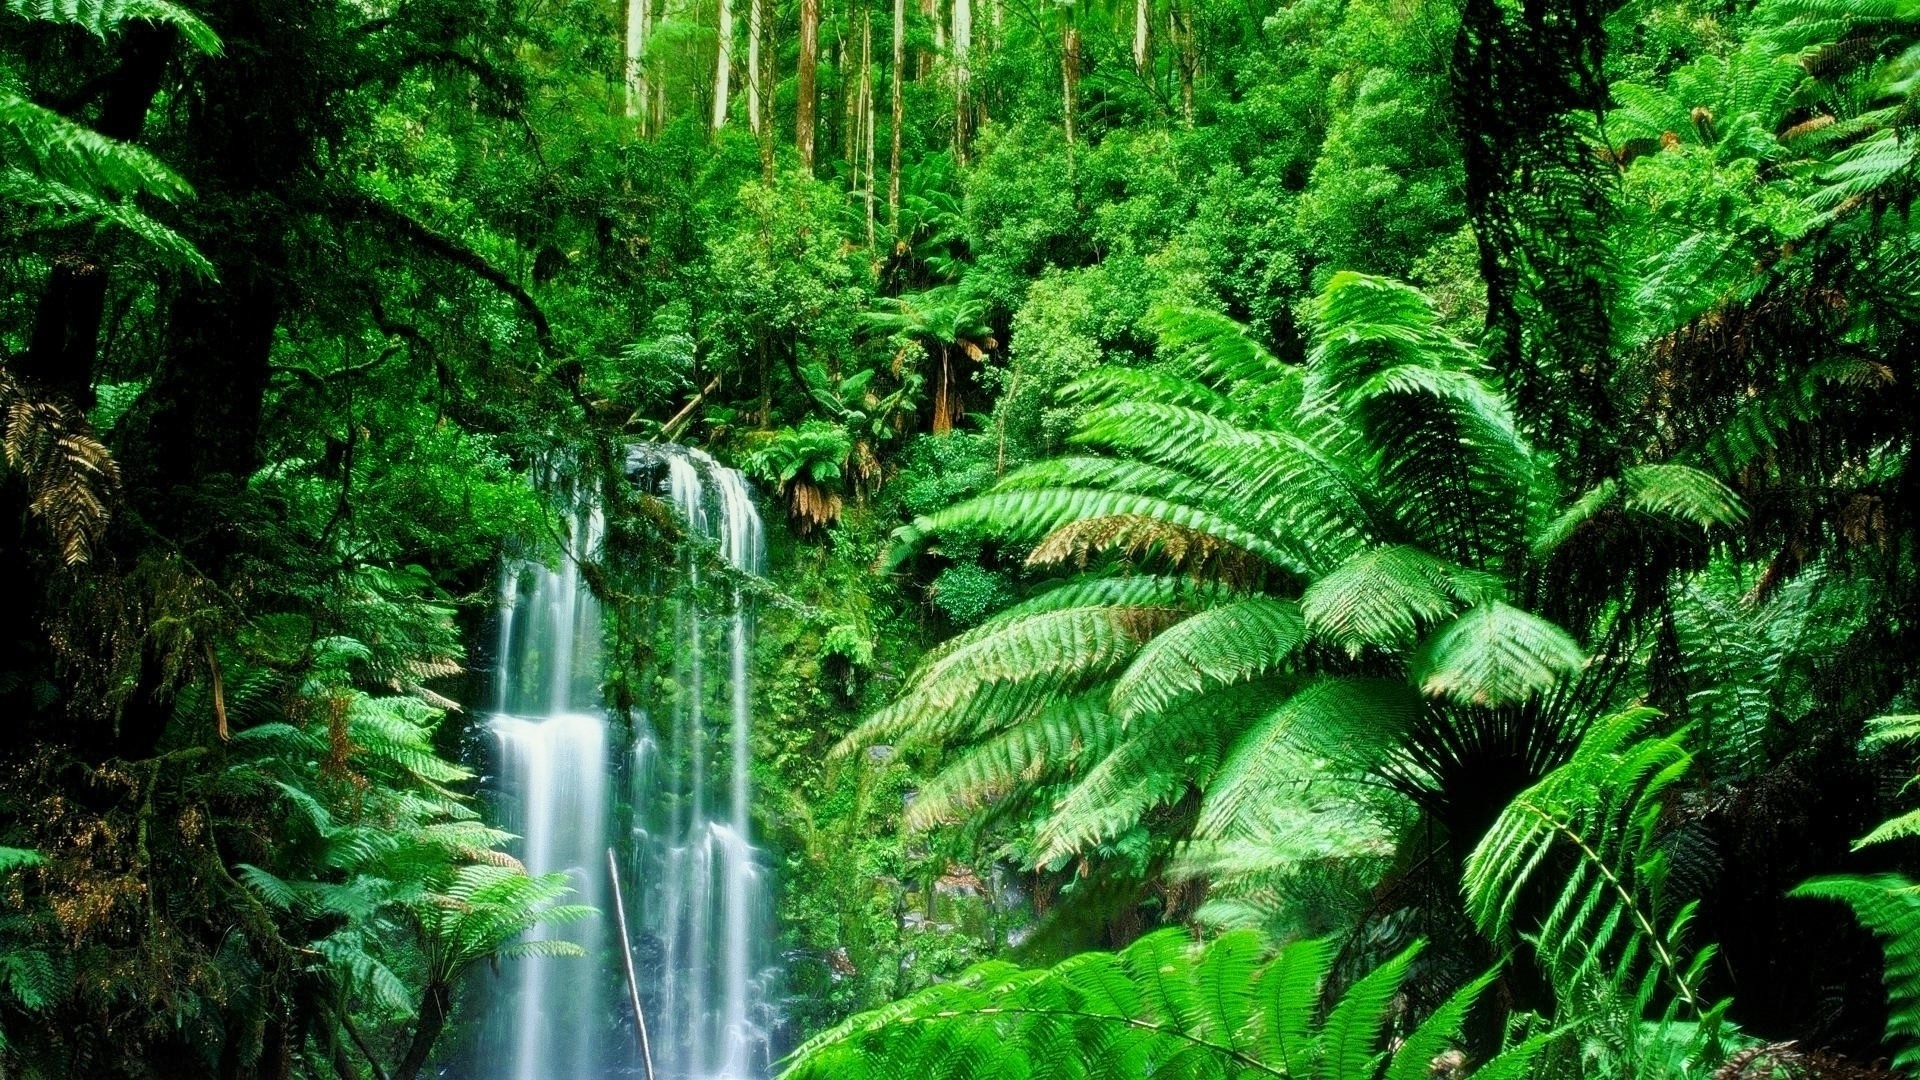 Green Landscapes Trees Jungle Forest Rainforest Wallpaper   1920x1080